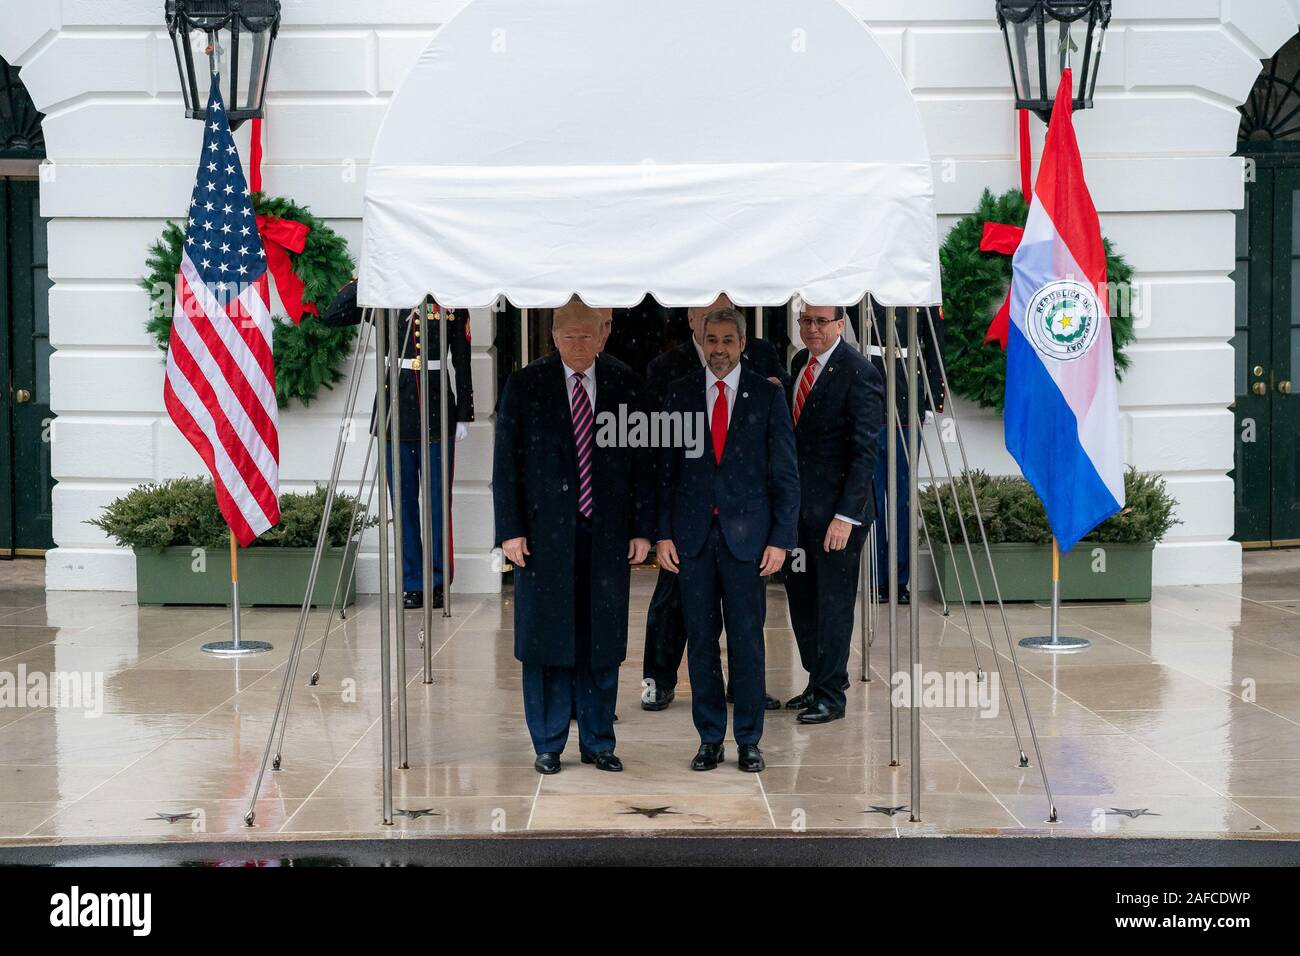 Washington, United States Of America. 13th Dec, 2019. President Donald J. Trump poses for a photo with Paraguay President Mario Abdo Benitez Friday, Dec. 13, 2019, at the South Portico of the White House People: President Donald J. Trump, Paraguay President Mario Abdo Benitez Credit: Storms Media Group/Alamy Live News Stock Photo